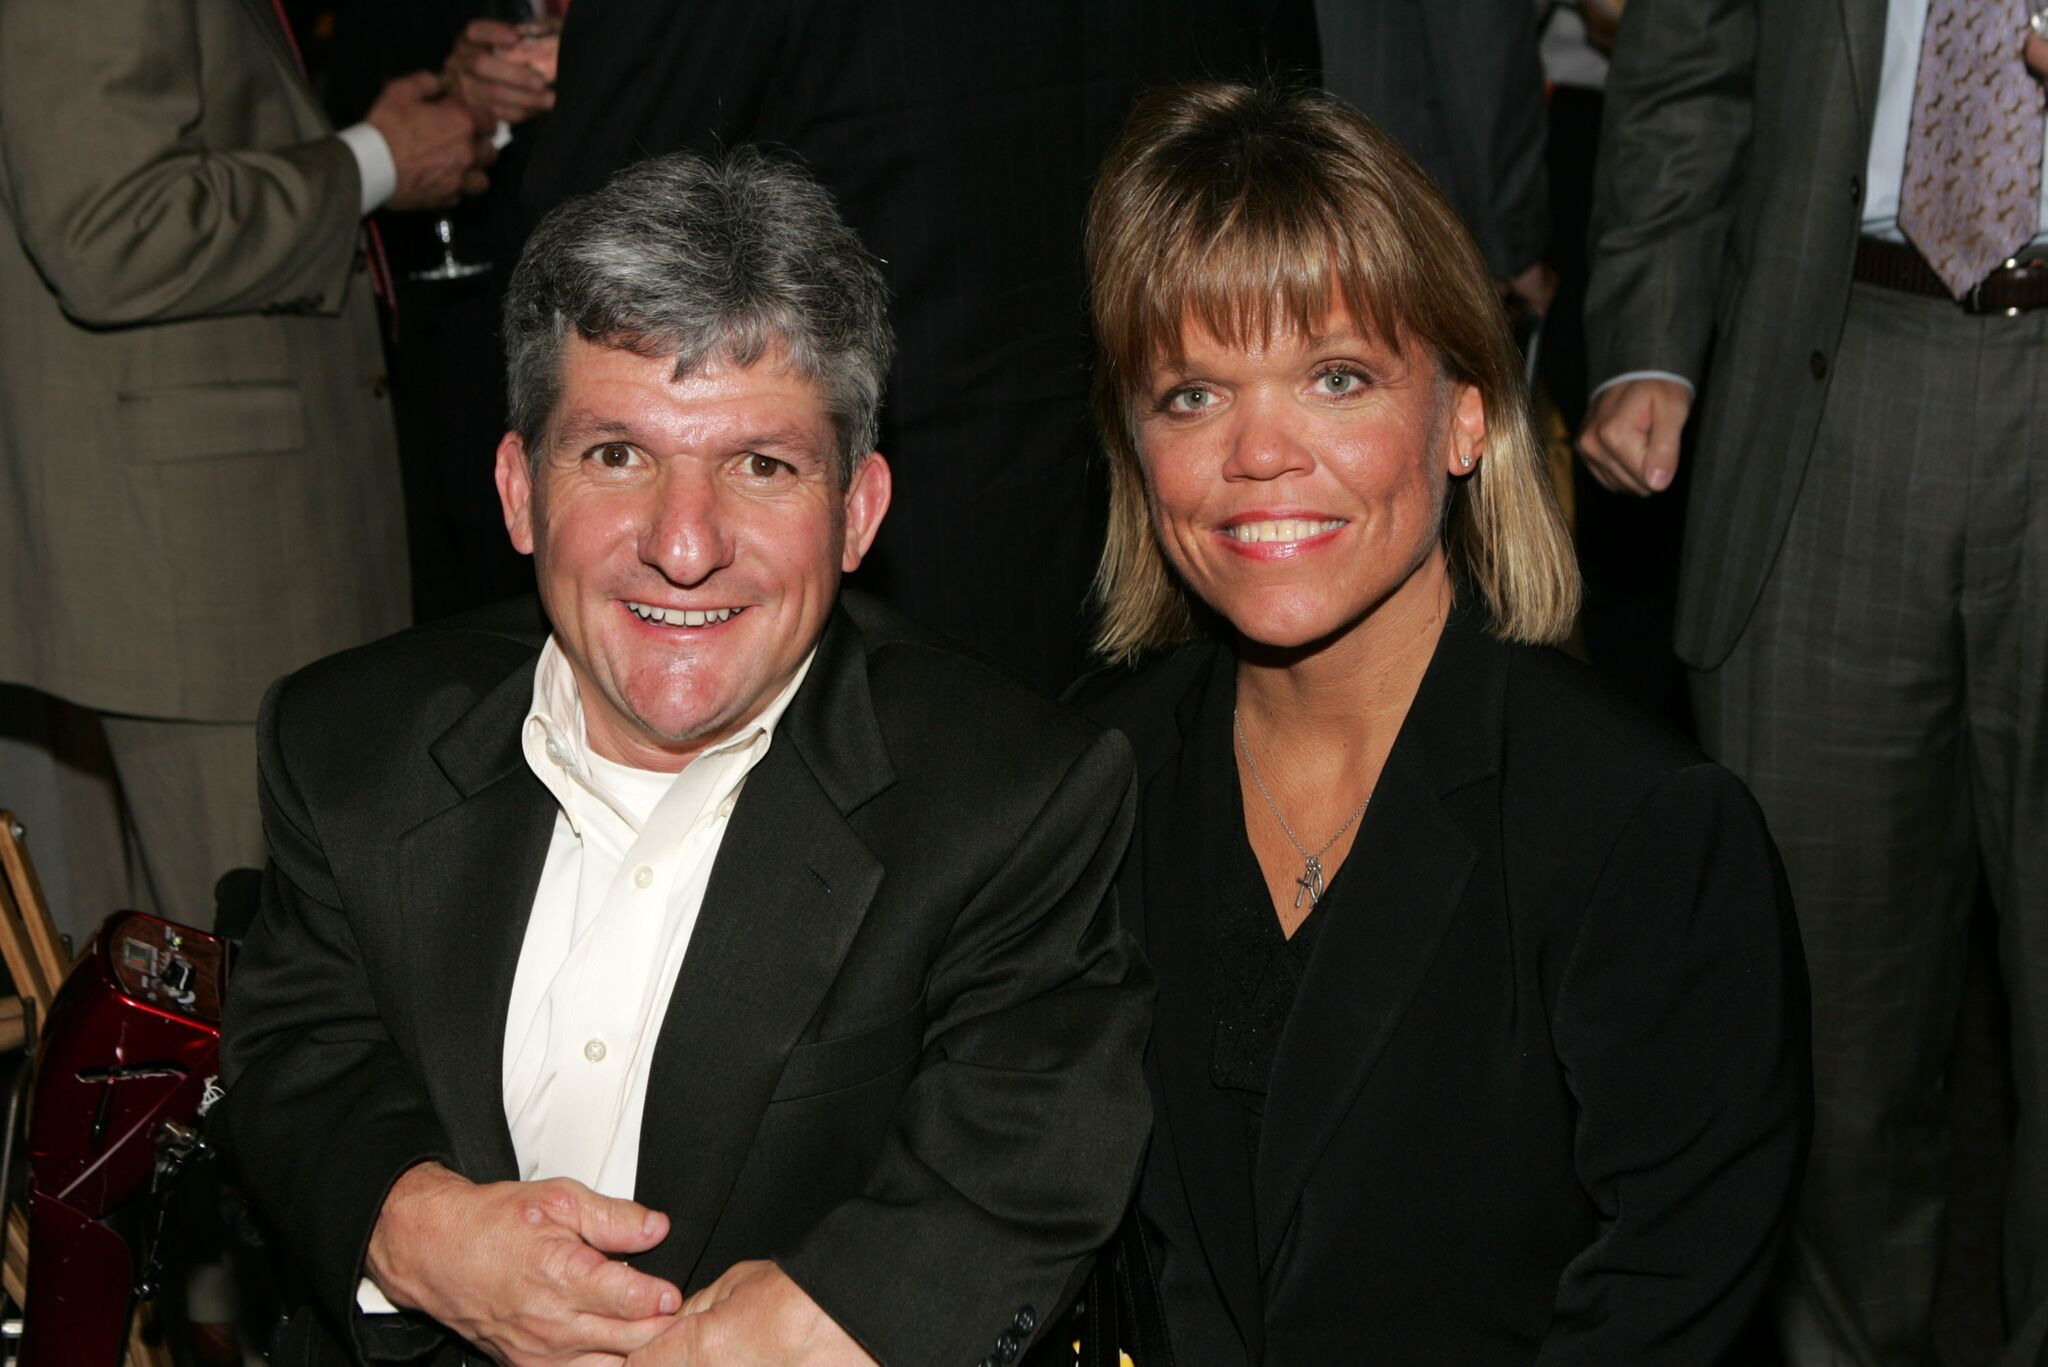 Matt and Amy Roloff attend the Discovery Upfront Presentation NY - Talent Images | Getty Images